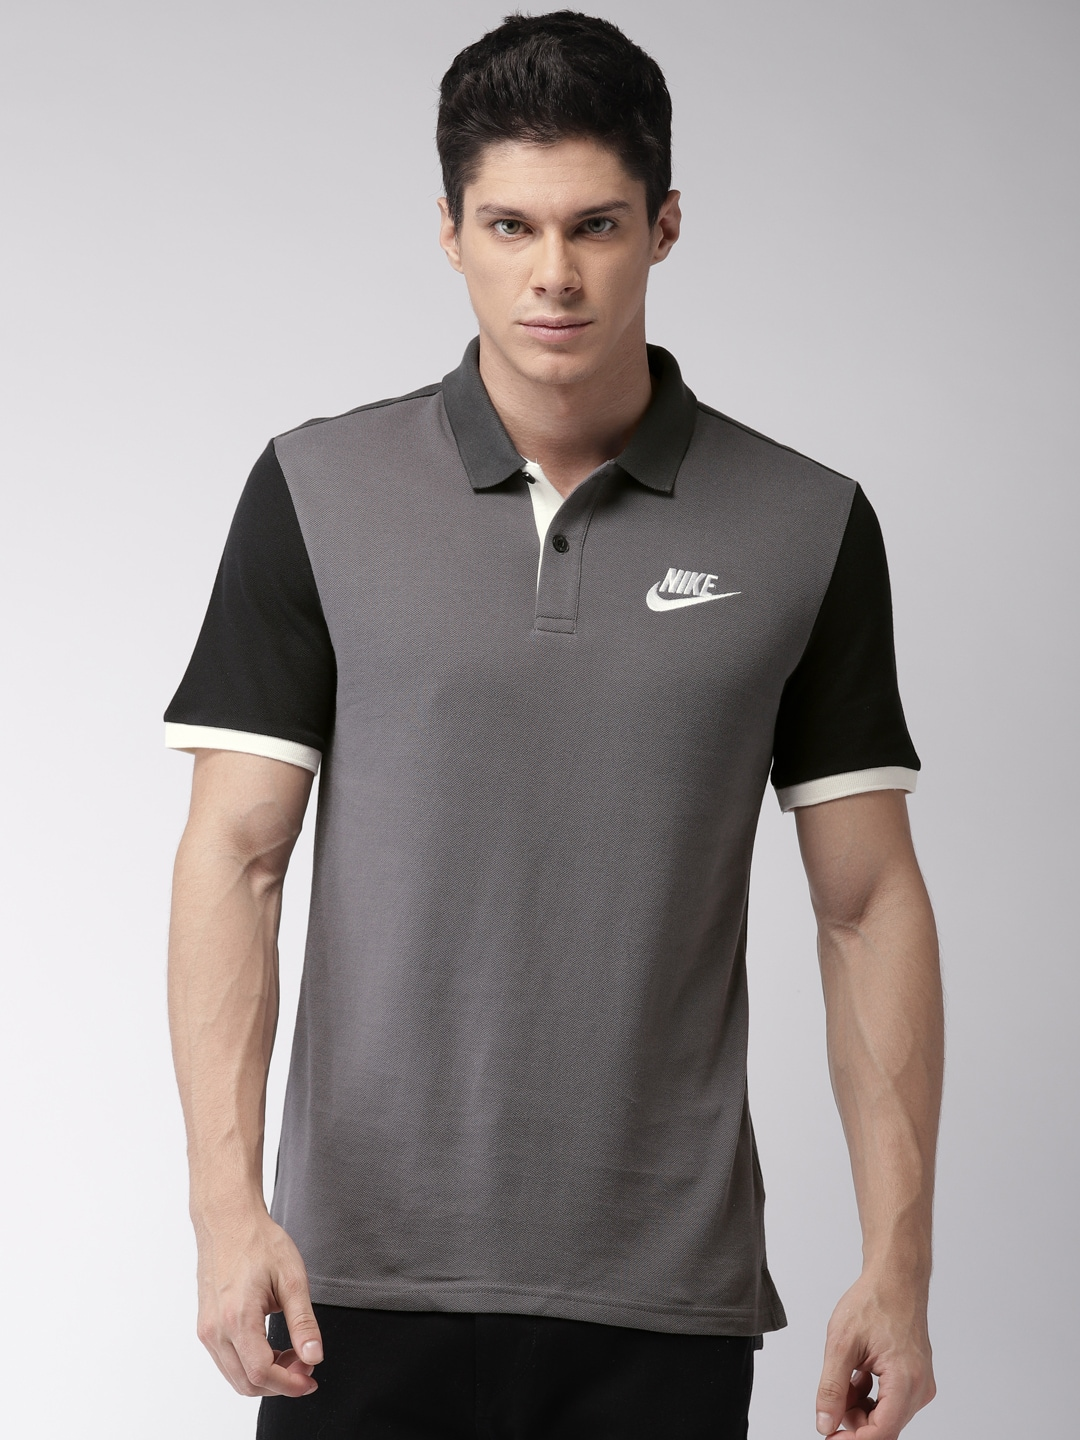 1bc65b9a Nike Clothings for Men & Women - Buy Nike Apparels Online - Myntra